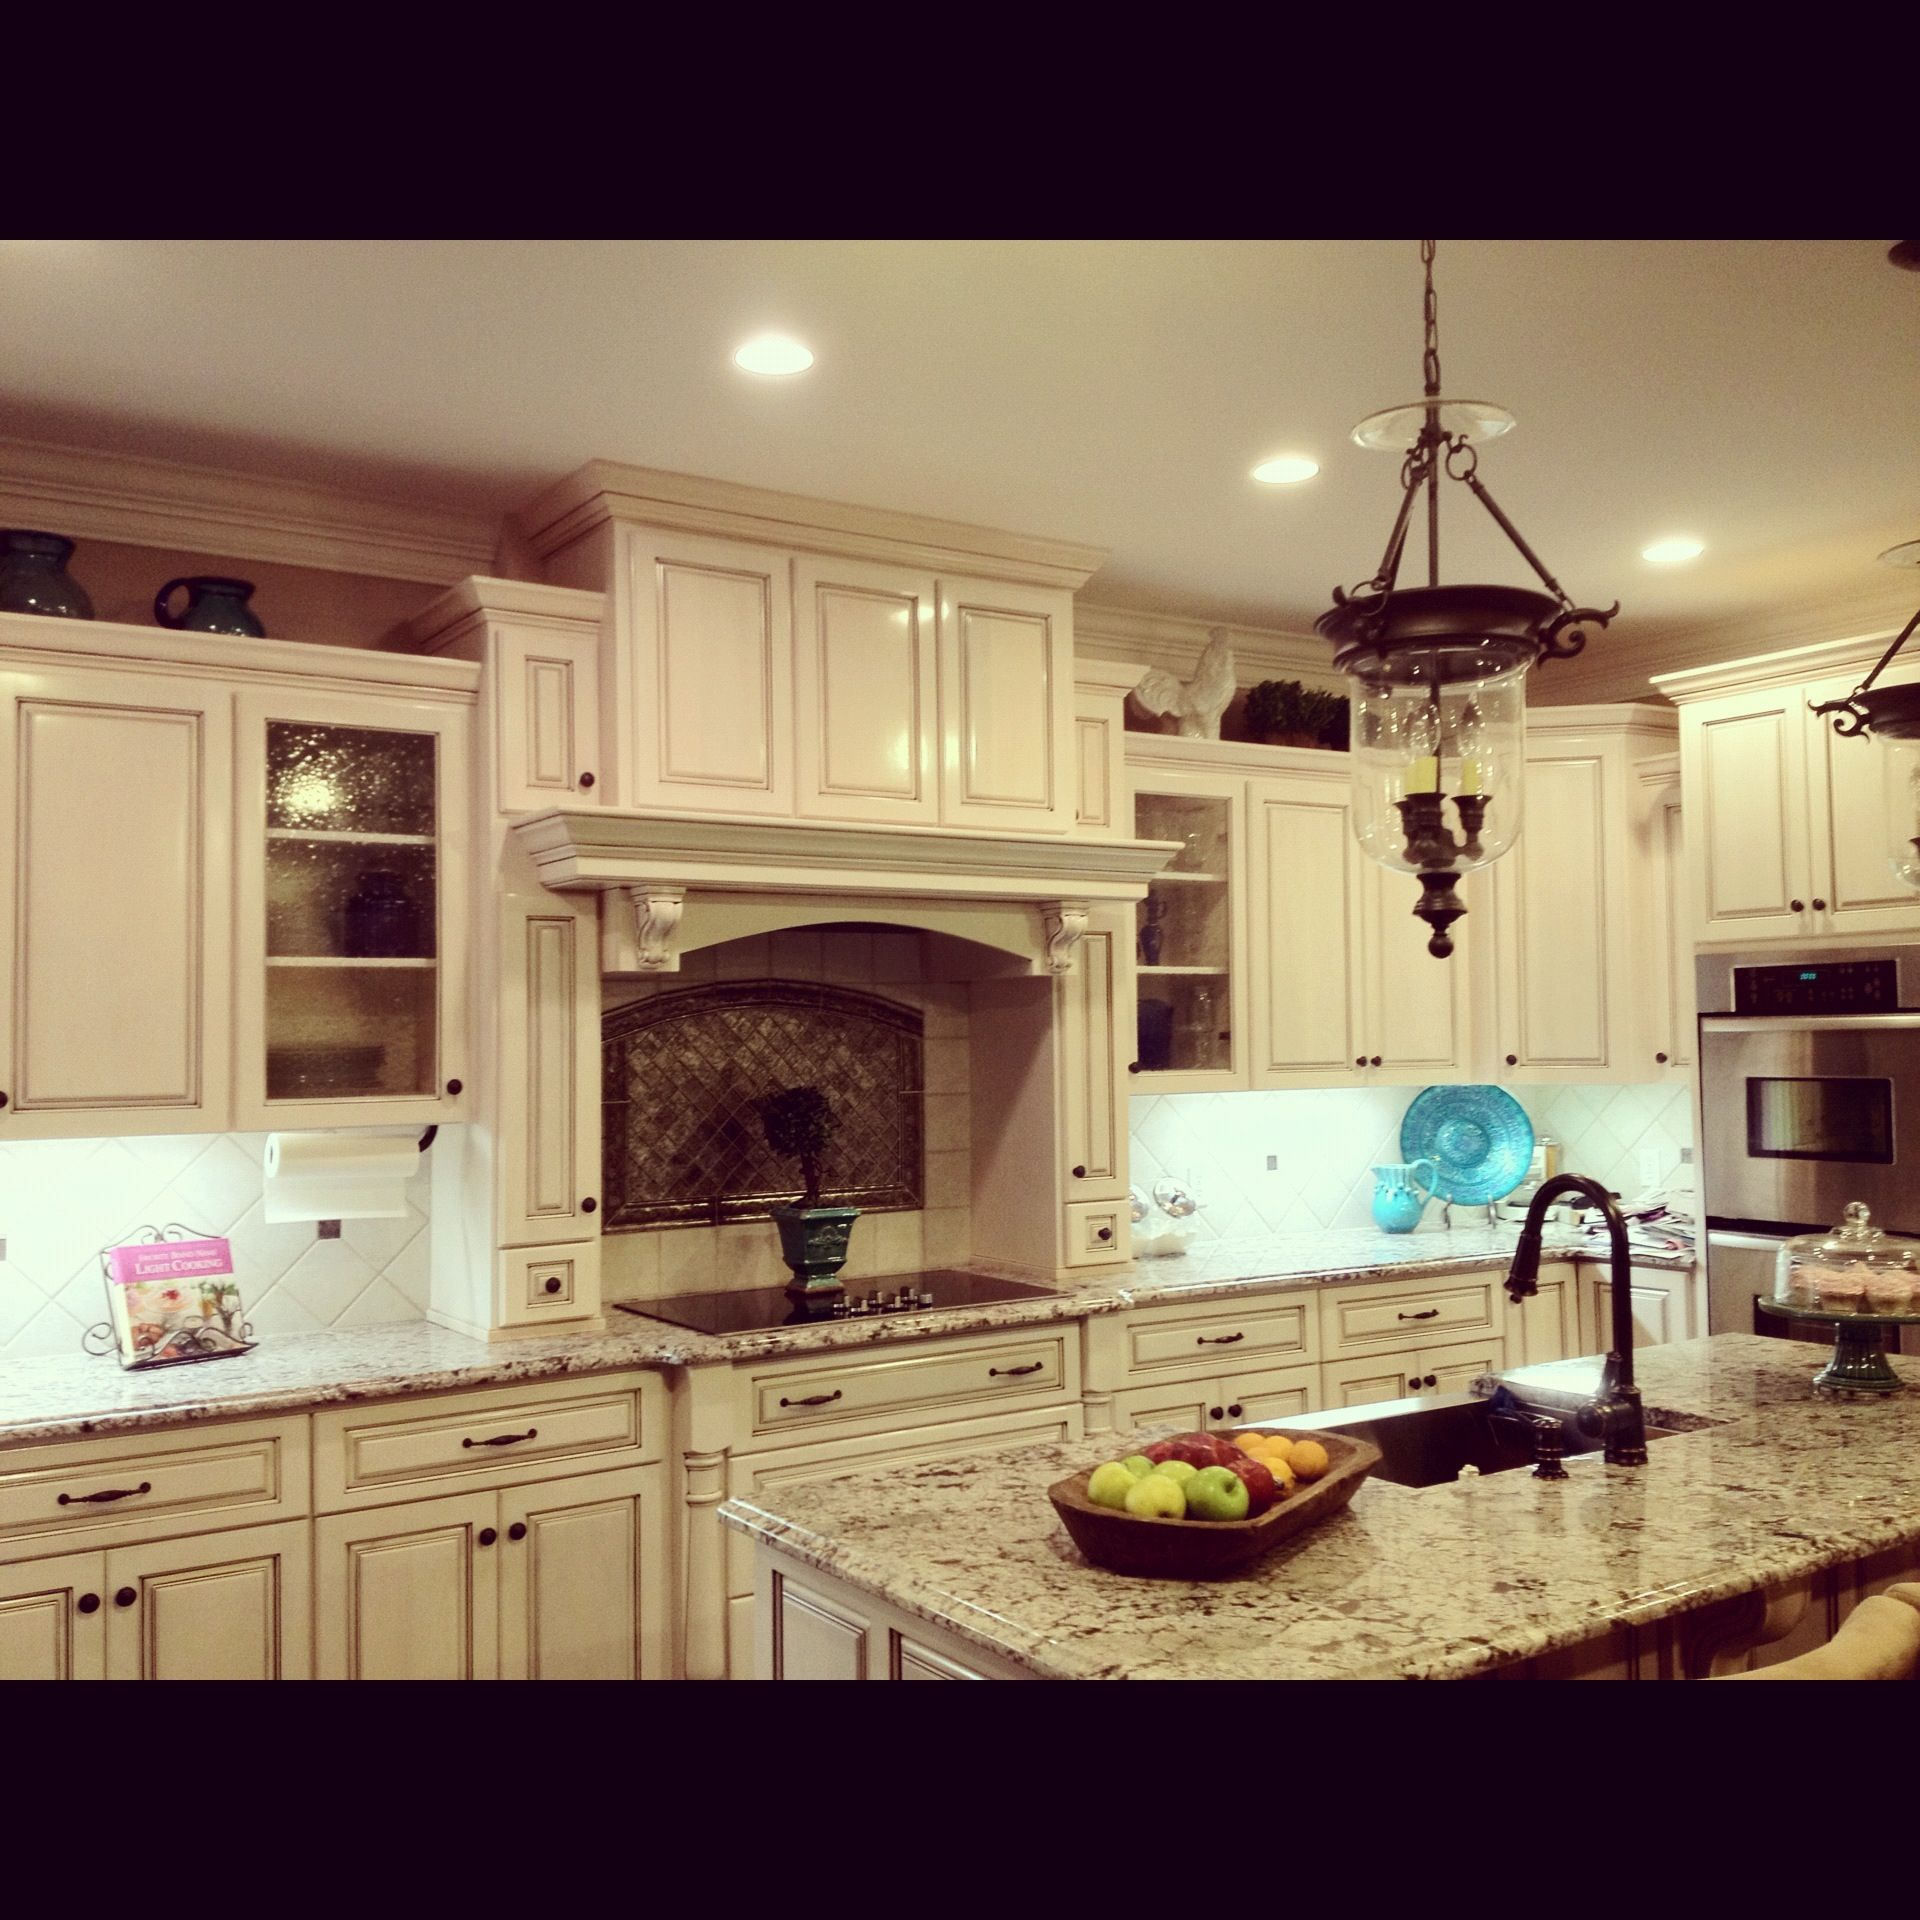 Beautiful Kitchens With White Cabinets: Stain Kitchen Cabinets With Glaze, This Is Our Beautiful